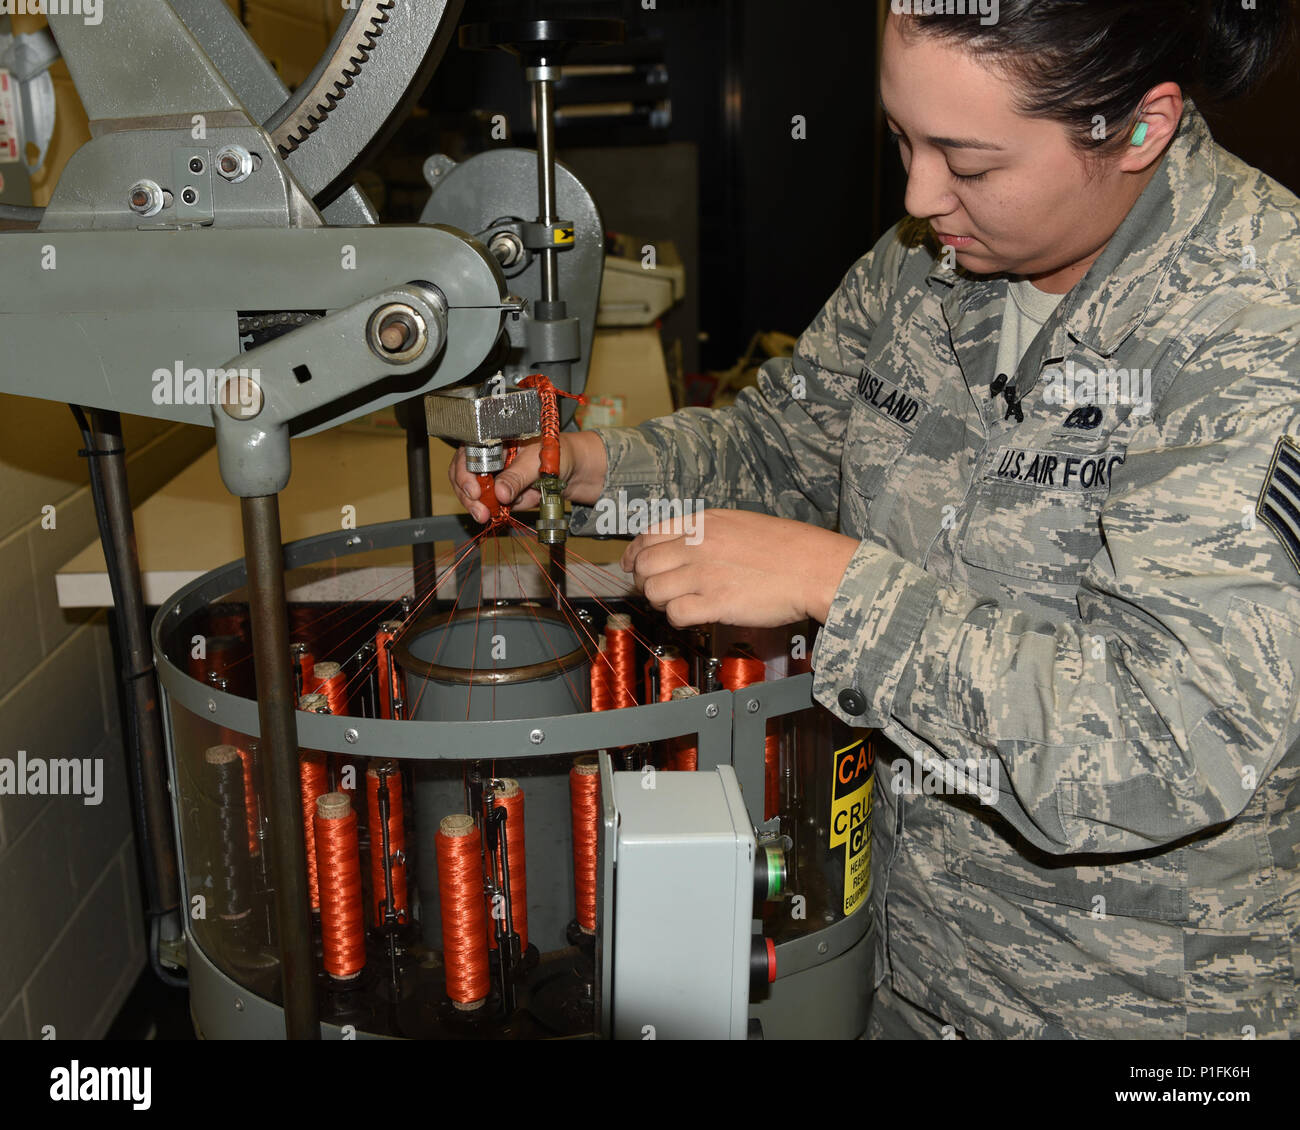 Aircraft Wire Harness Machine Free Download Airline U S Air Force Staff Sgt Elizabeth Mccausland 53rd Test Support Manufacturer At